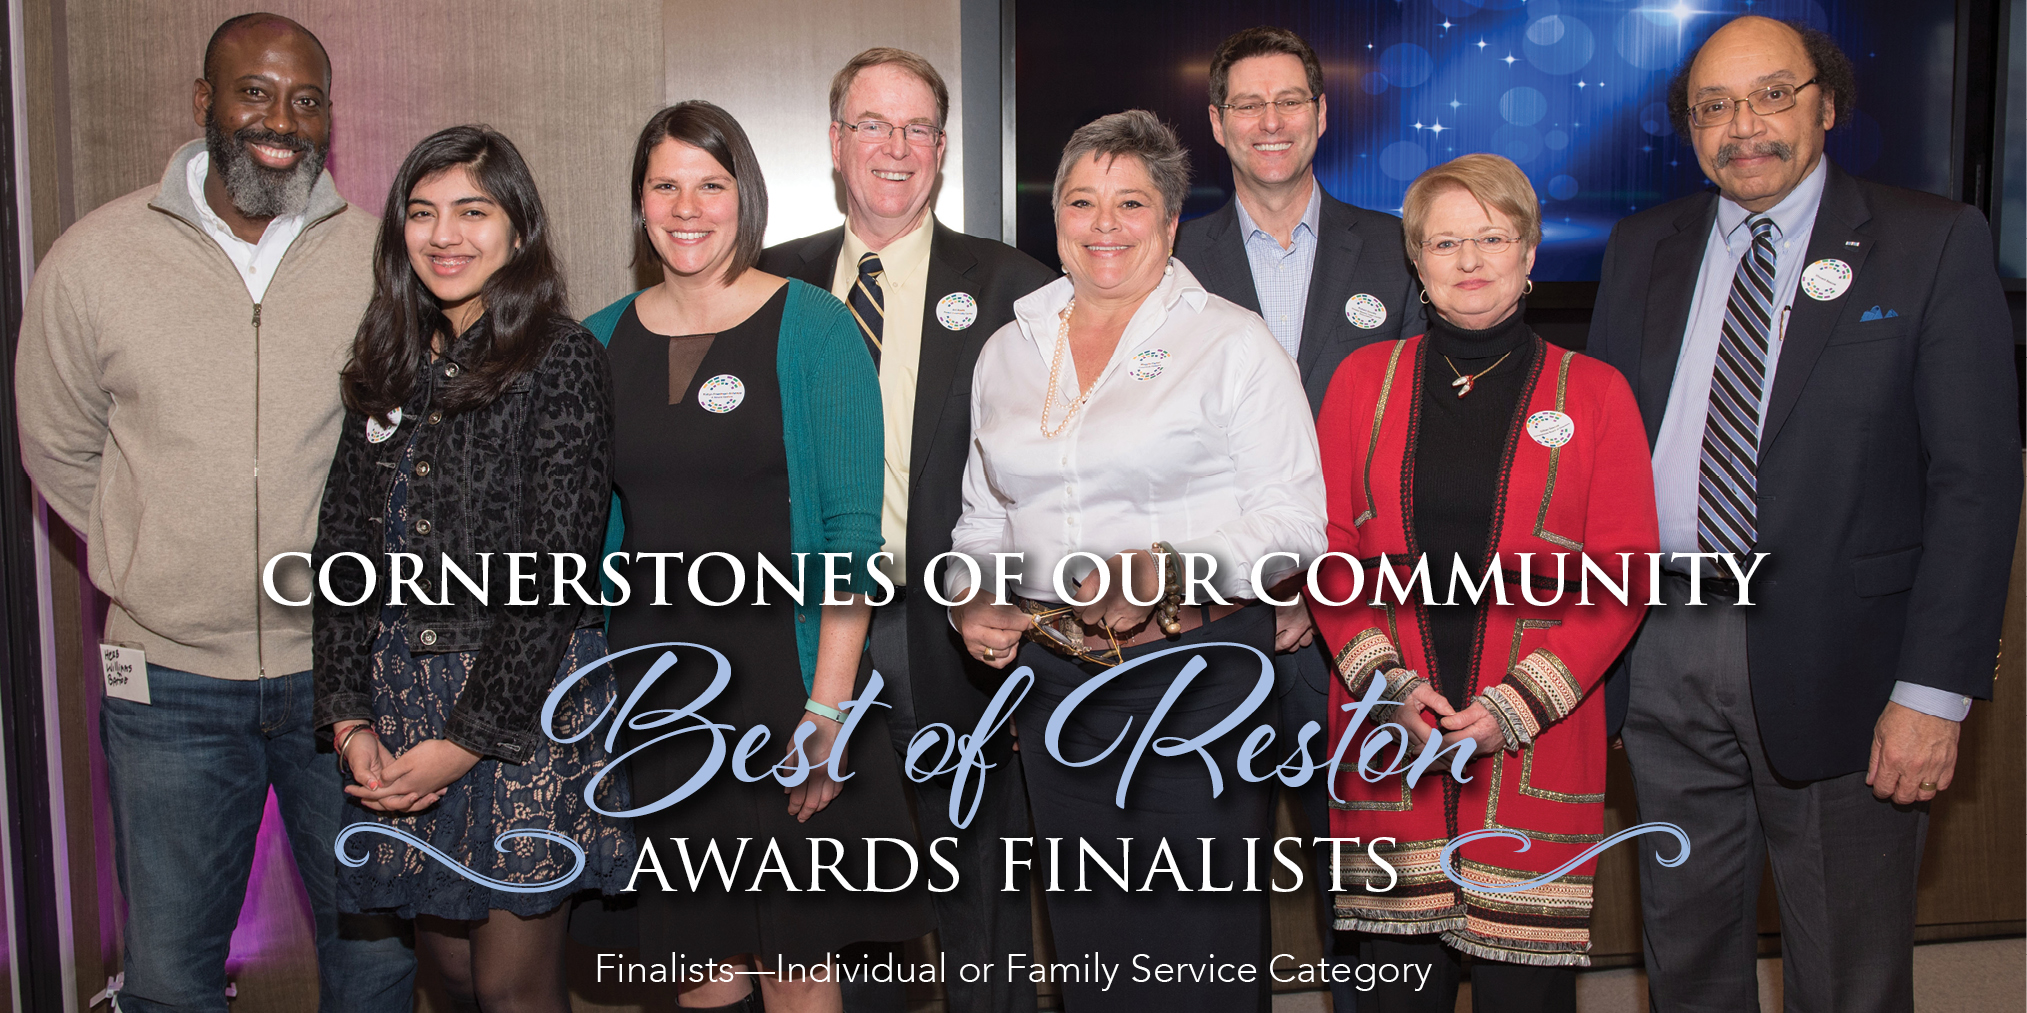 Cornerstones Of Our Community Best of Reston Awards Finalists - Finalists—Individual or Family Service Category